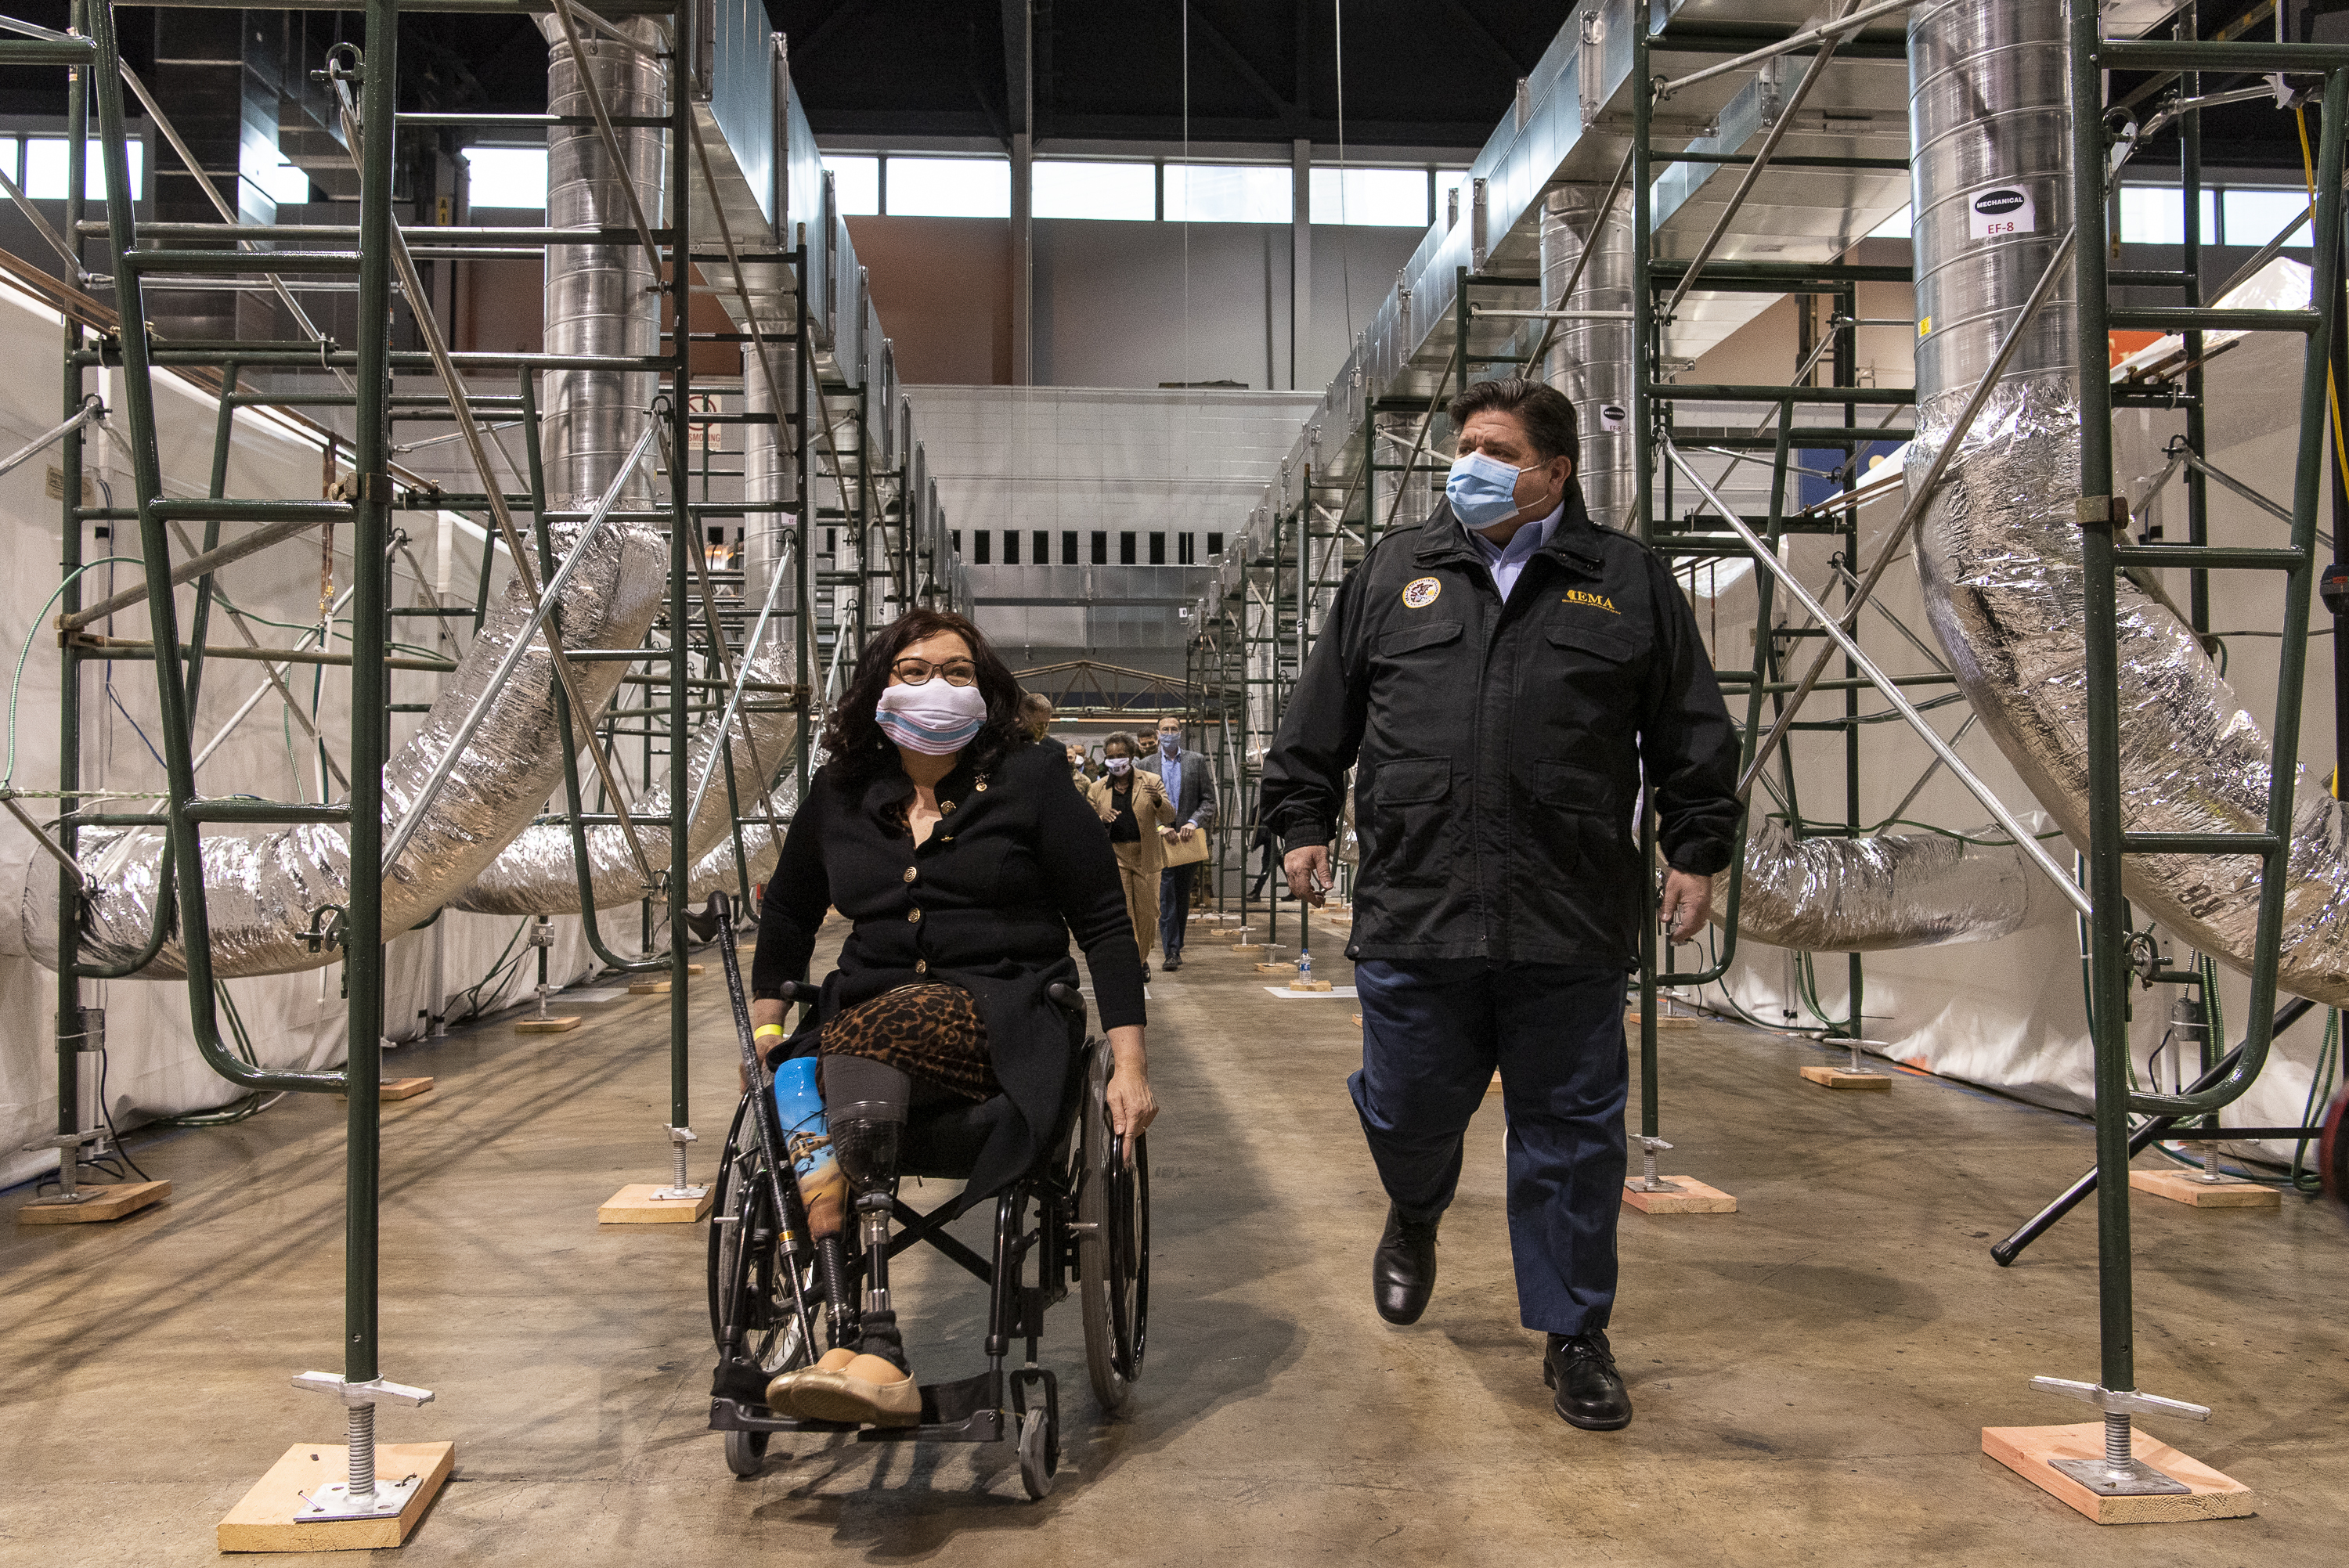 Sen. Tammy Duckworth, D-Illinois, and Gov. J.B. Pritzker tour a COVID-19 alternate care facility McCormick Place on April 17. Cook County Commissioner Brandon Johnson argues that residents of poorly run nursing homes who test positive for the virus could be cared for at the facility.